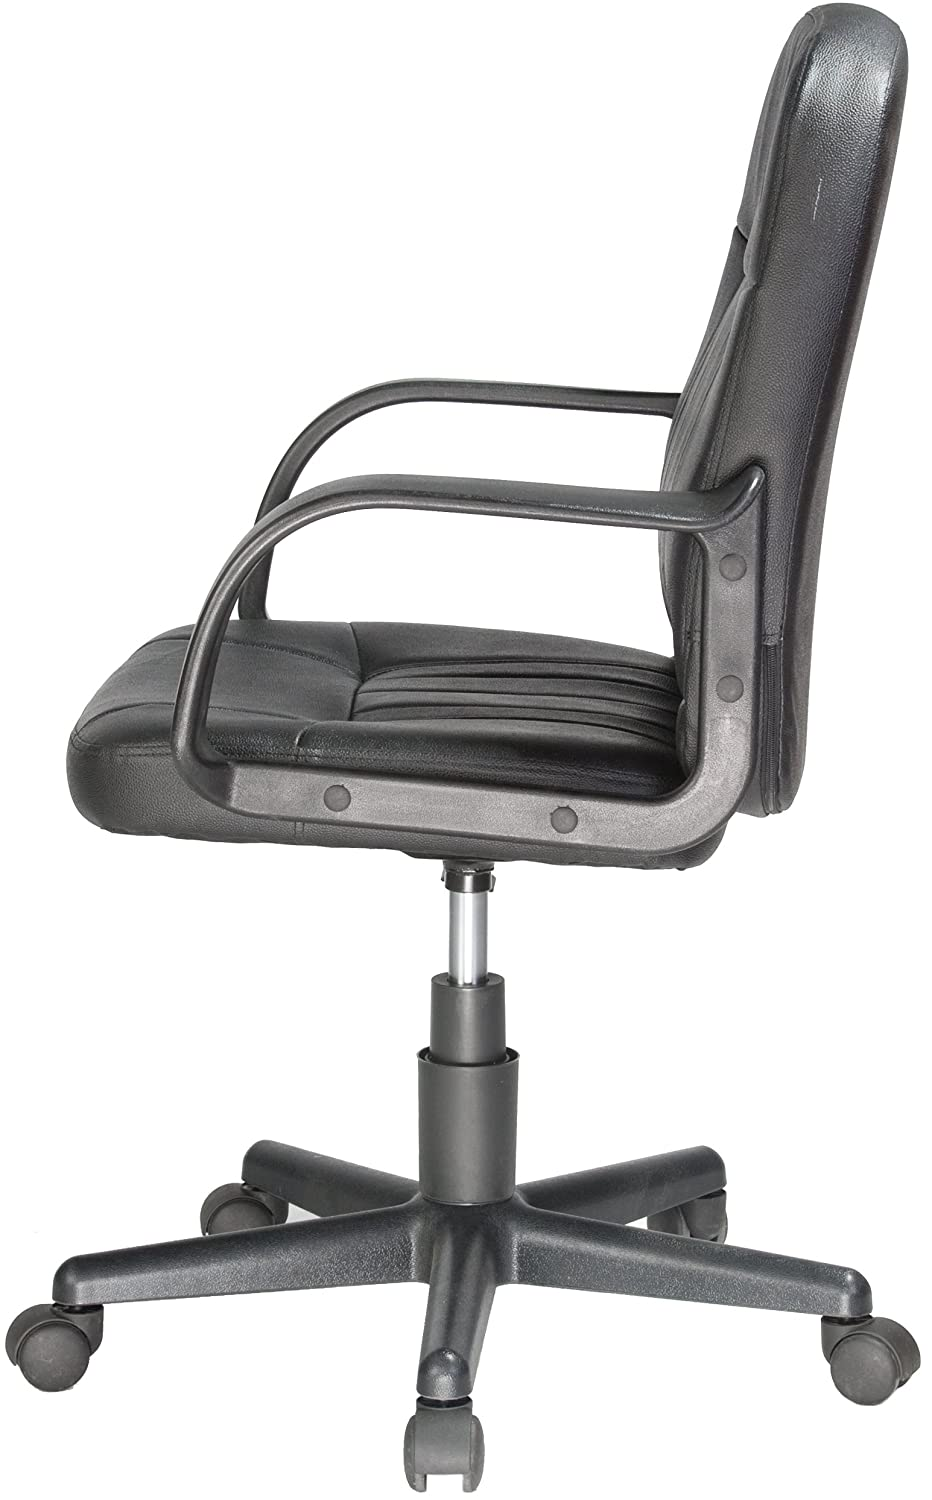 amazoncom comfort products 605607m midback leather office chair black kitchen u0026 dining - Leather Office Chairs